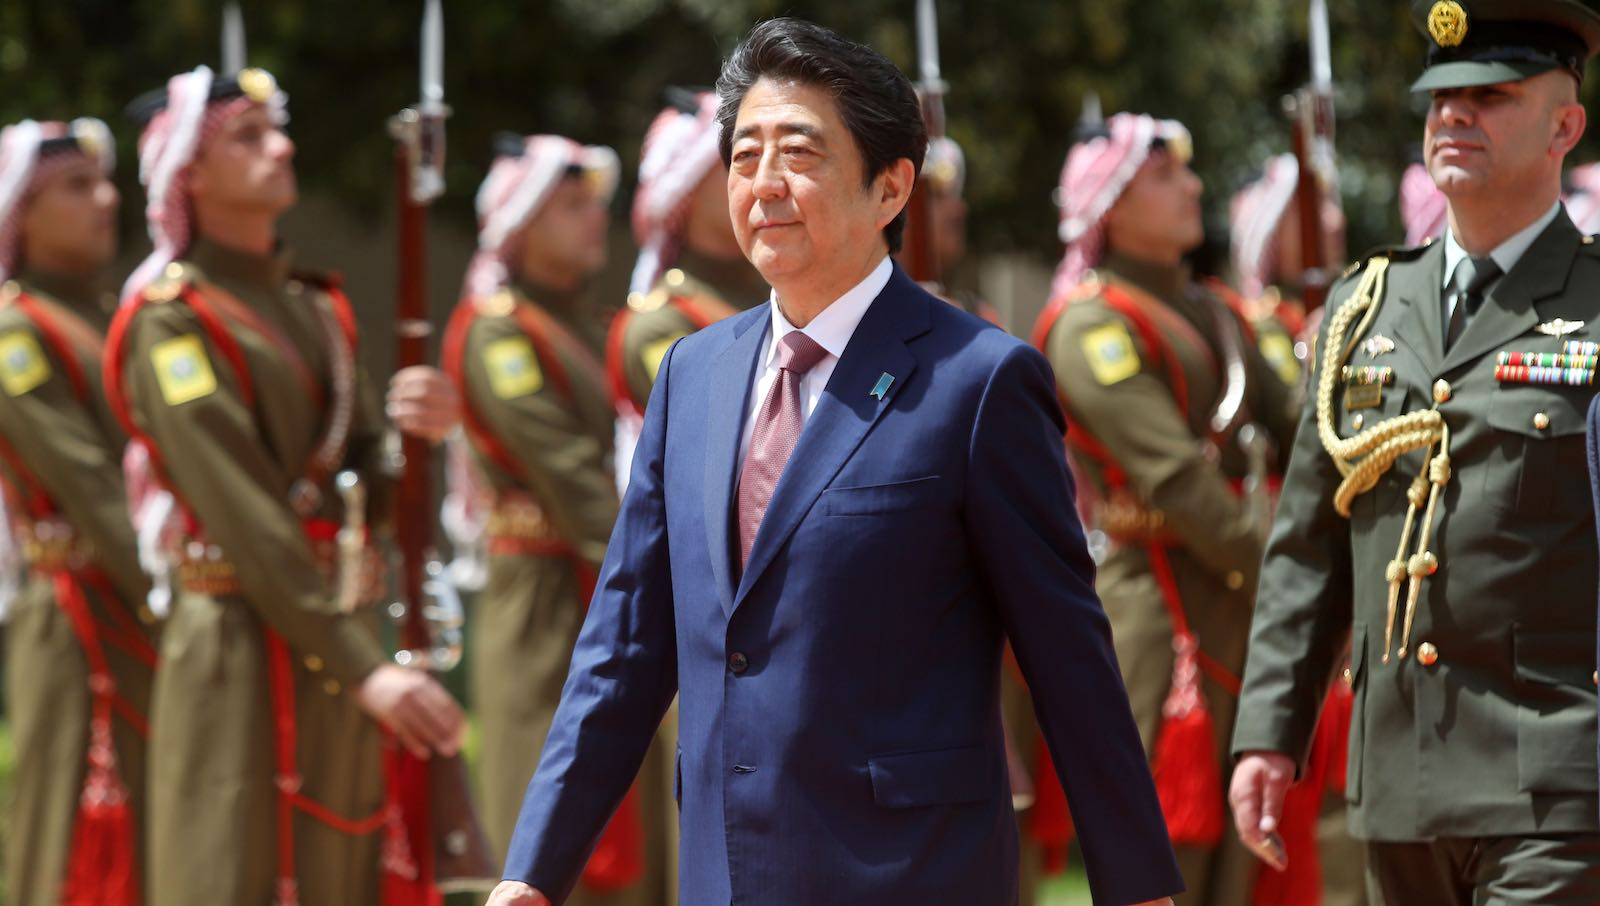 Japanese Prime Minister Shinzo Abe during a two-day visit to Jordan in May (Photo: Salah Malkawi/Getty)